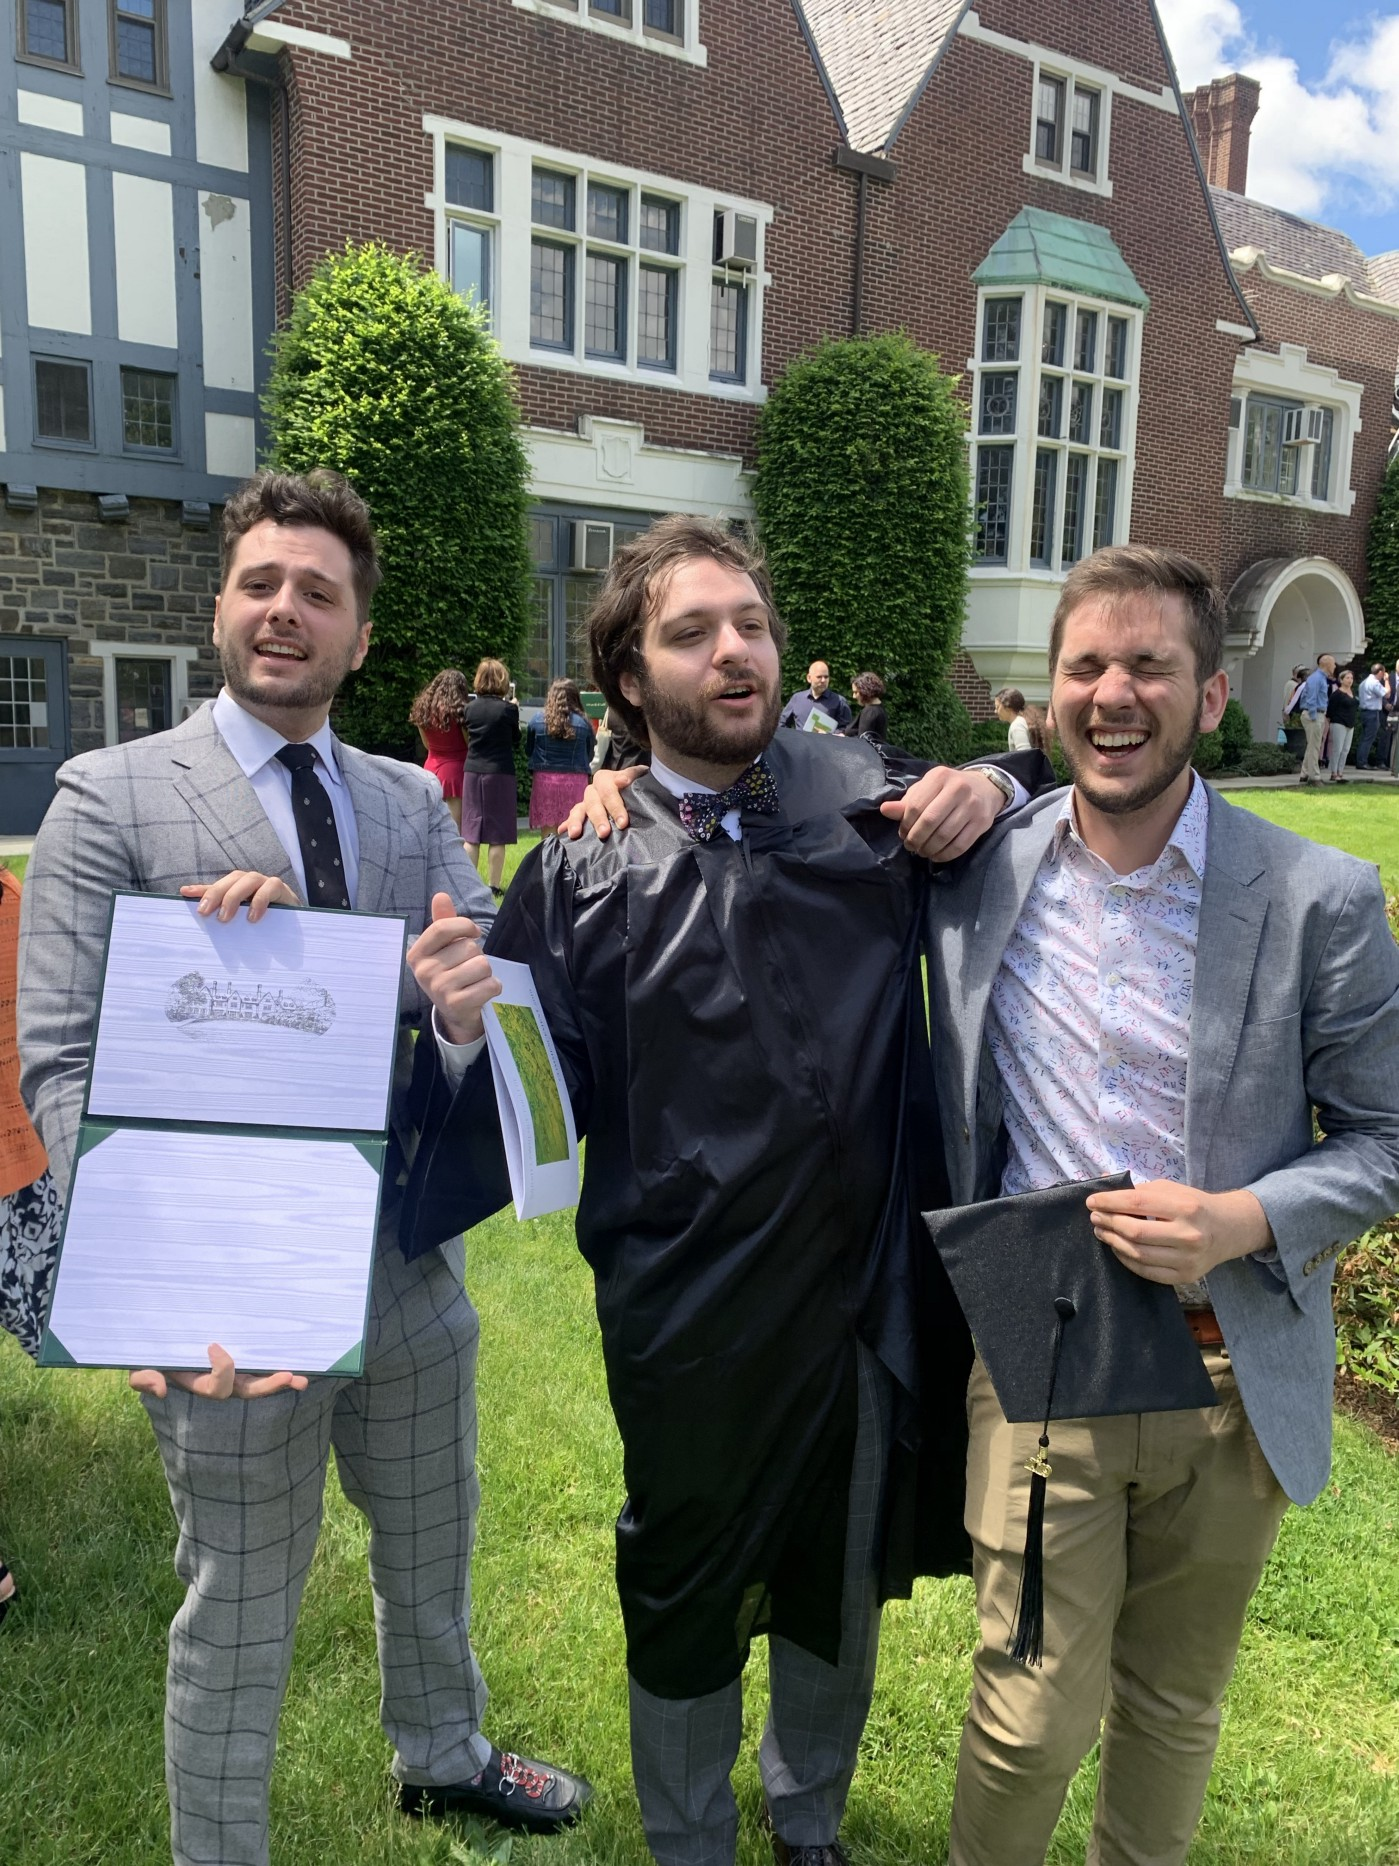 A picture of me wearing a suit, next to my two brothers at my middle brother's college graduation.